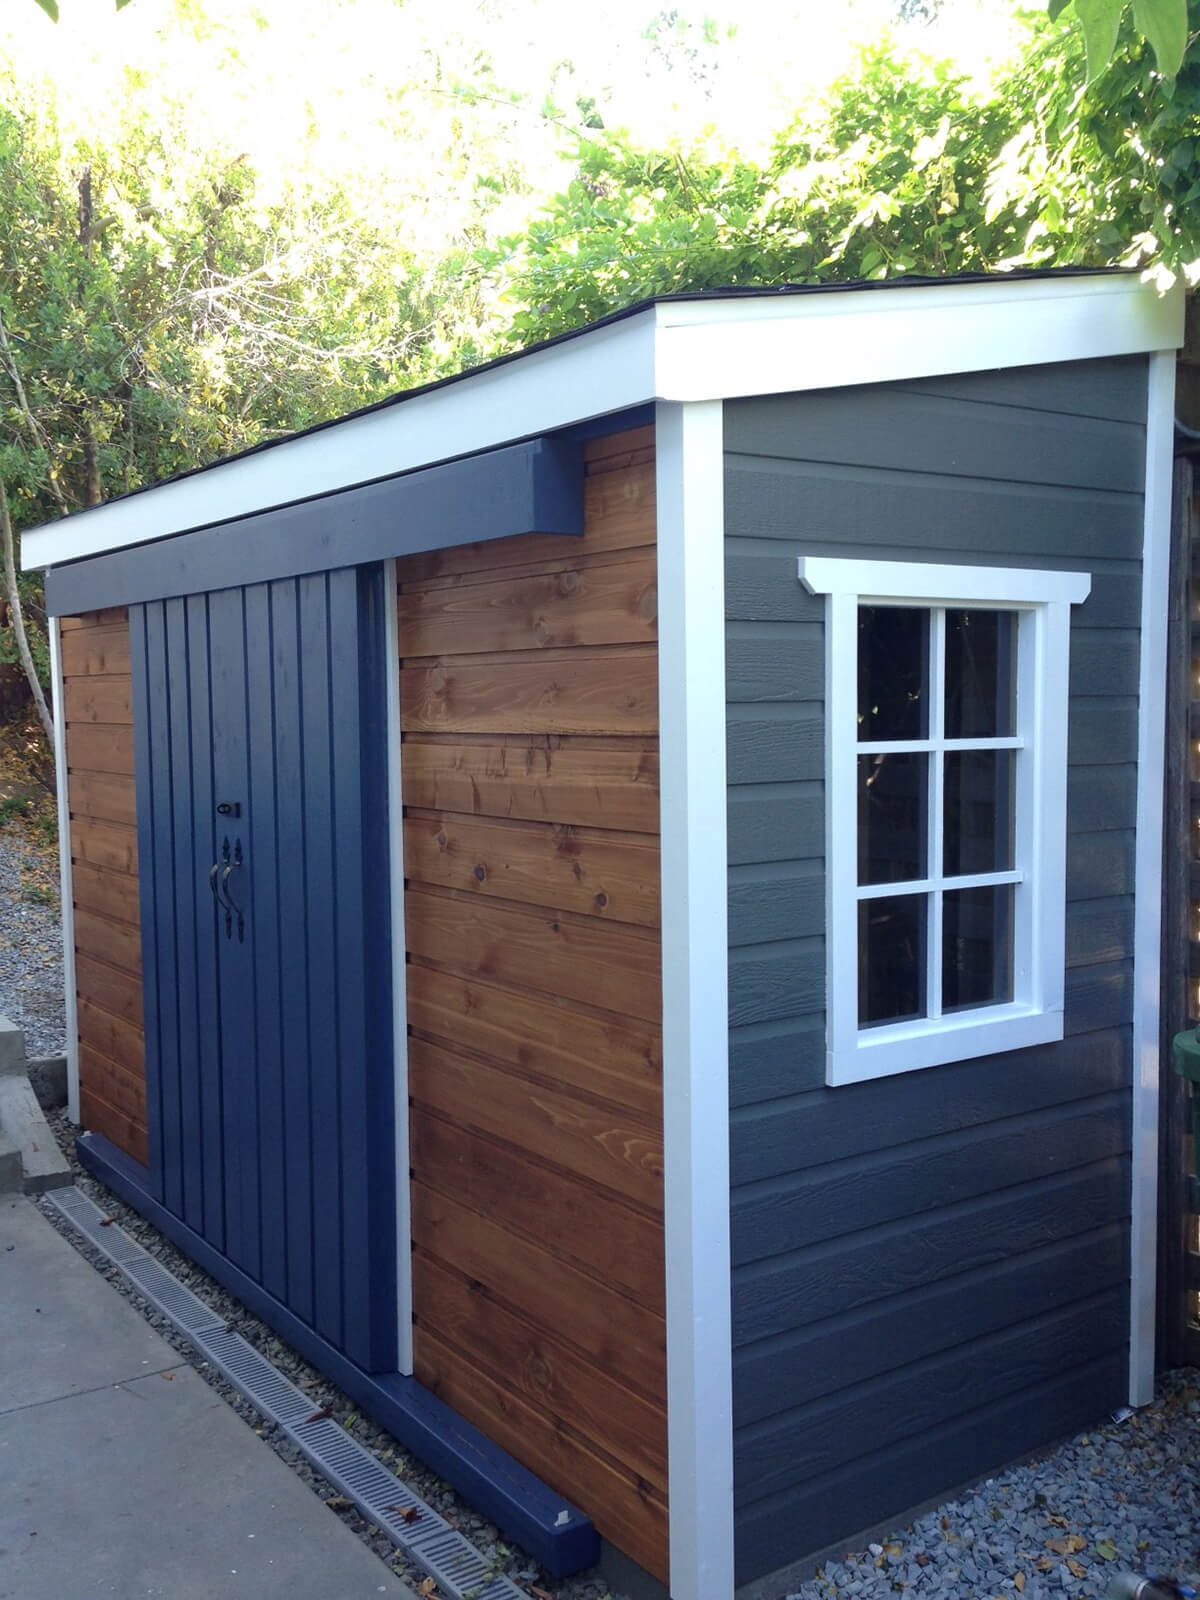 Small storage shed best storage design 2017 for Garden shed small